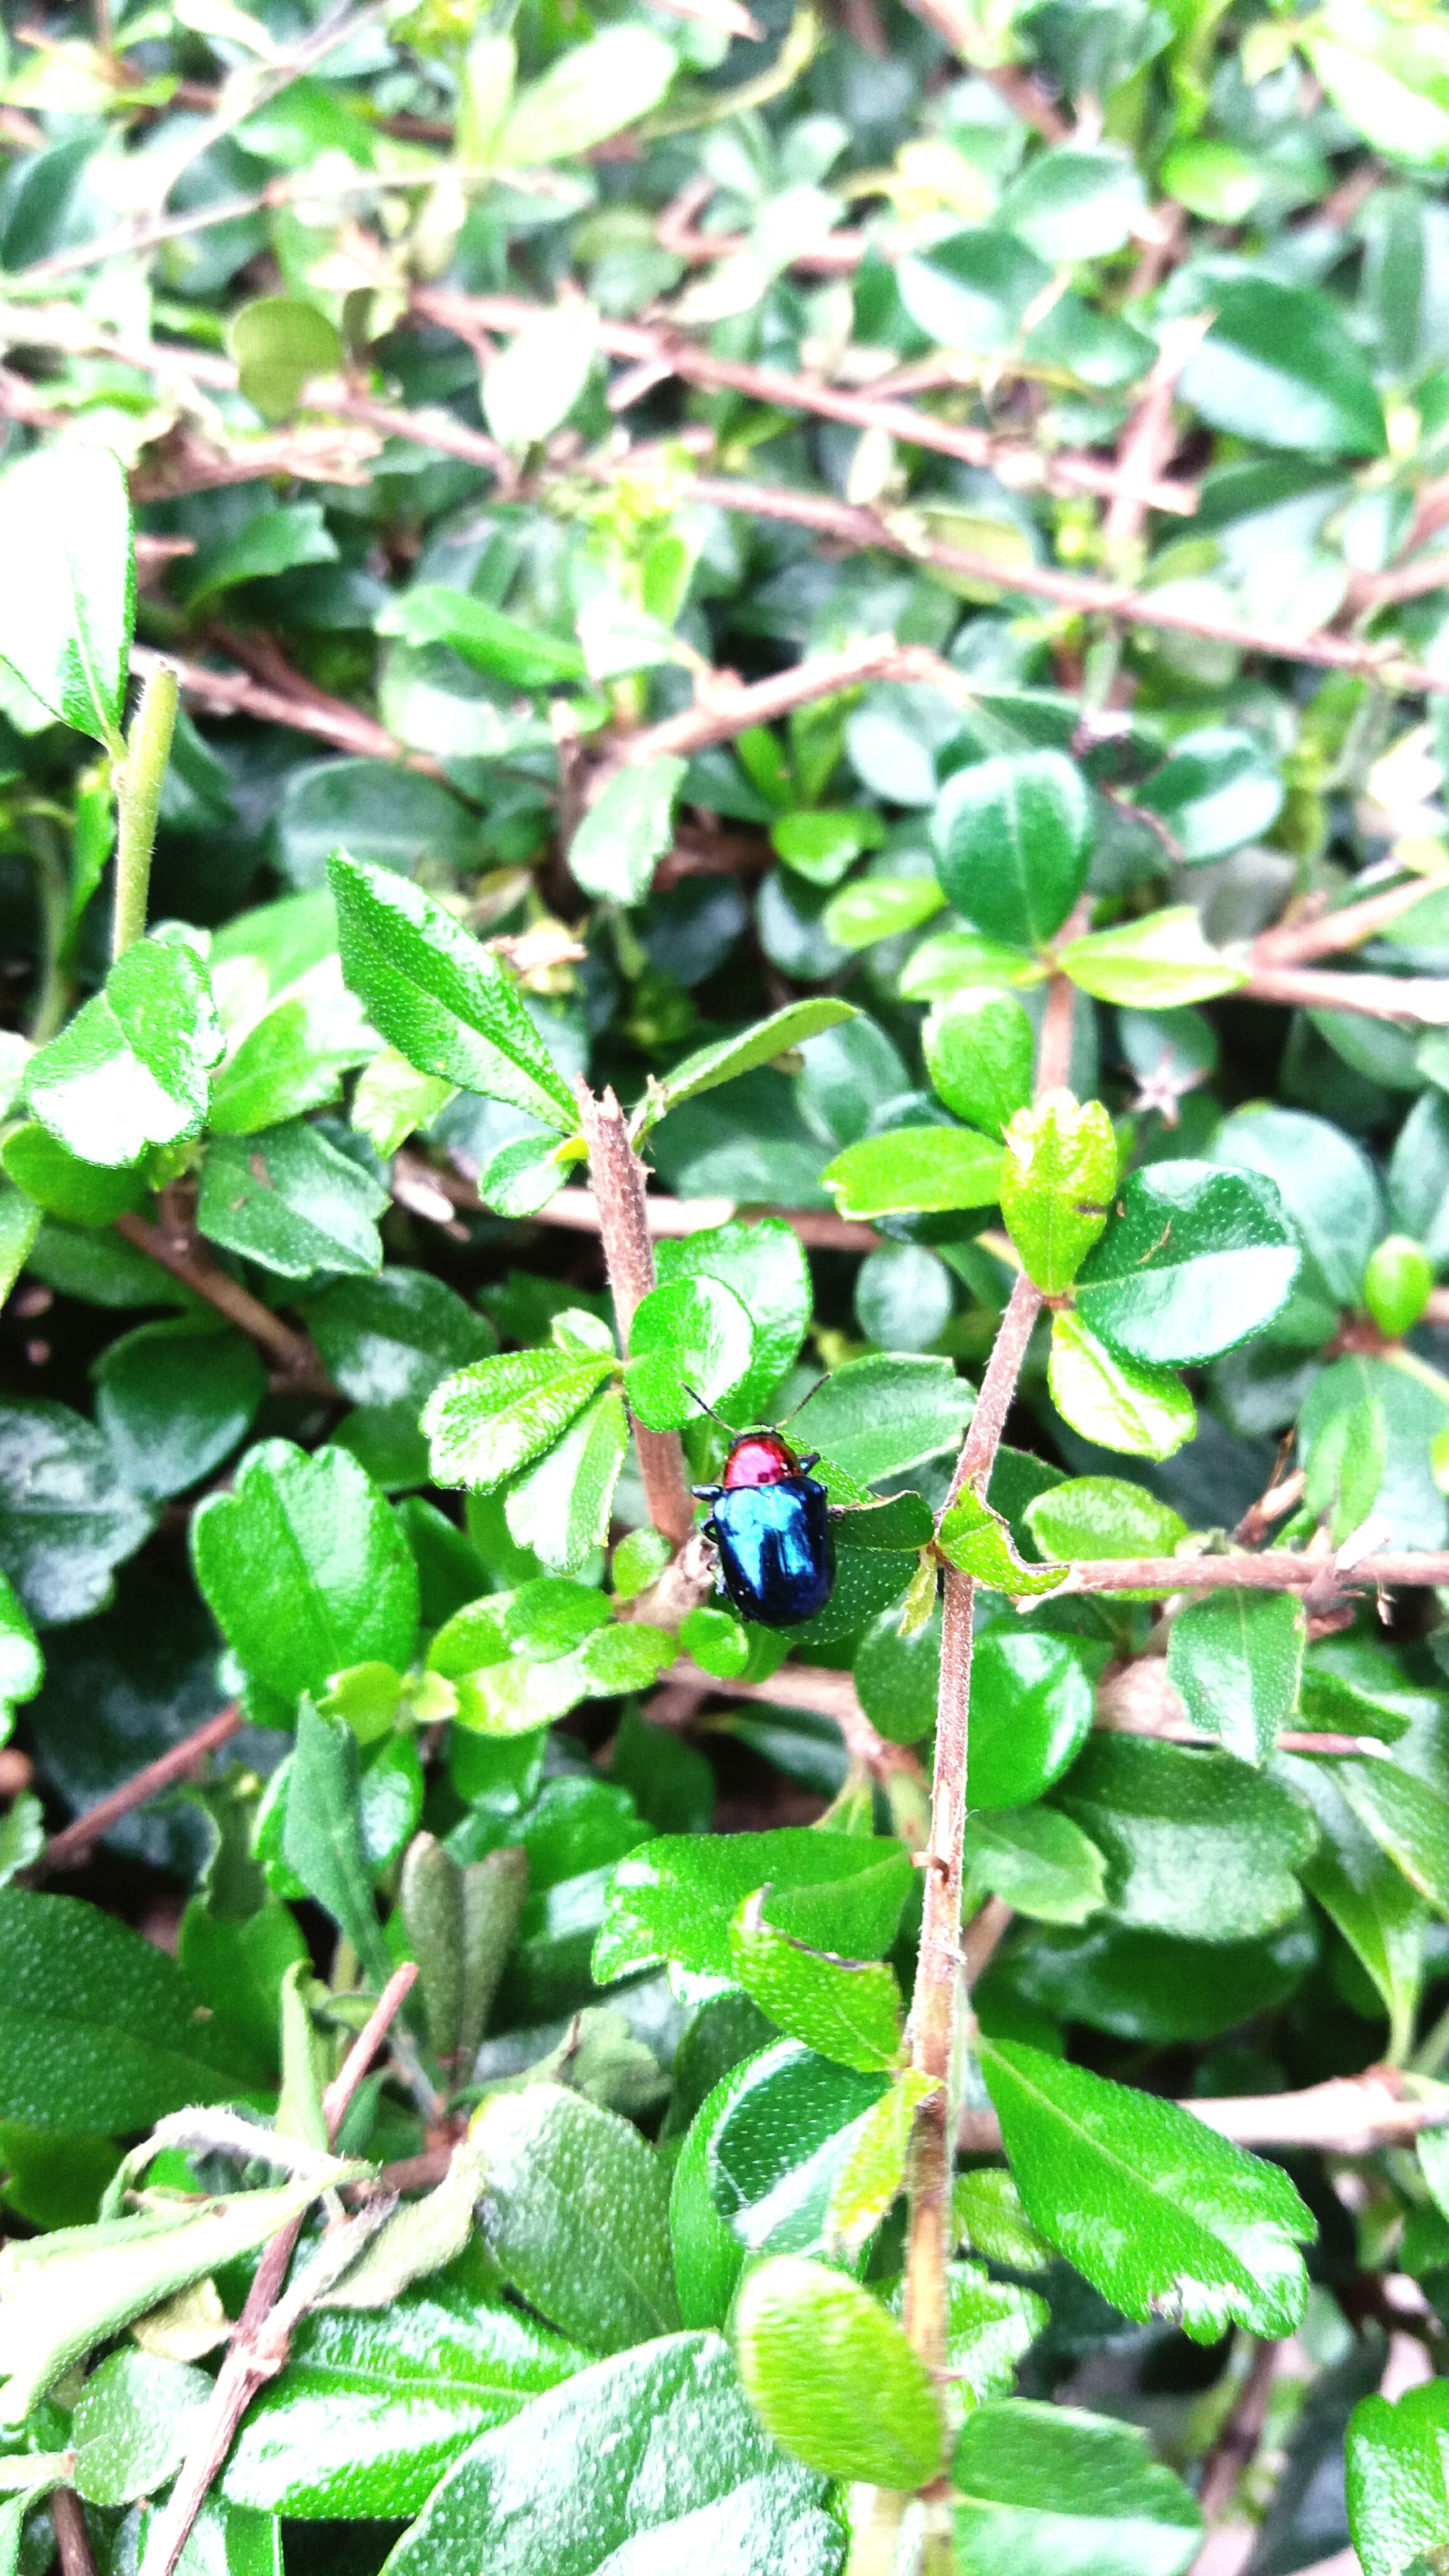 insect, growth, animal themes, leaf, nature, animals in the wild, one animal, green color, plant, beauty in nature, outdoors, day, no people, close-up, freshness